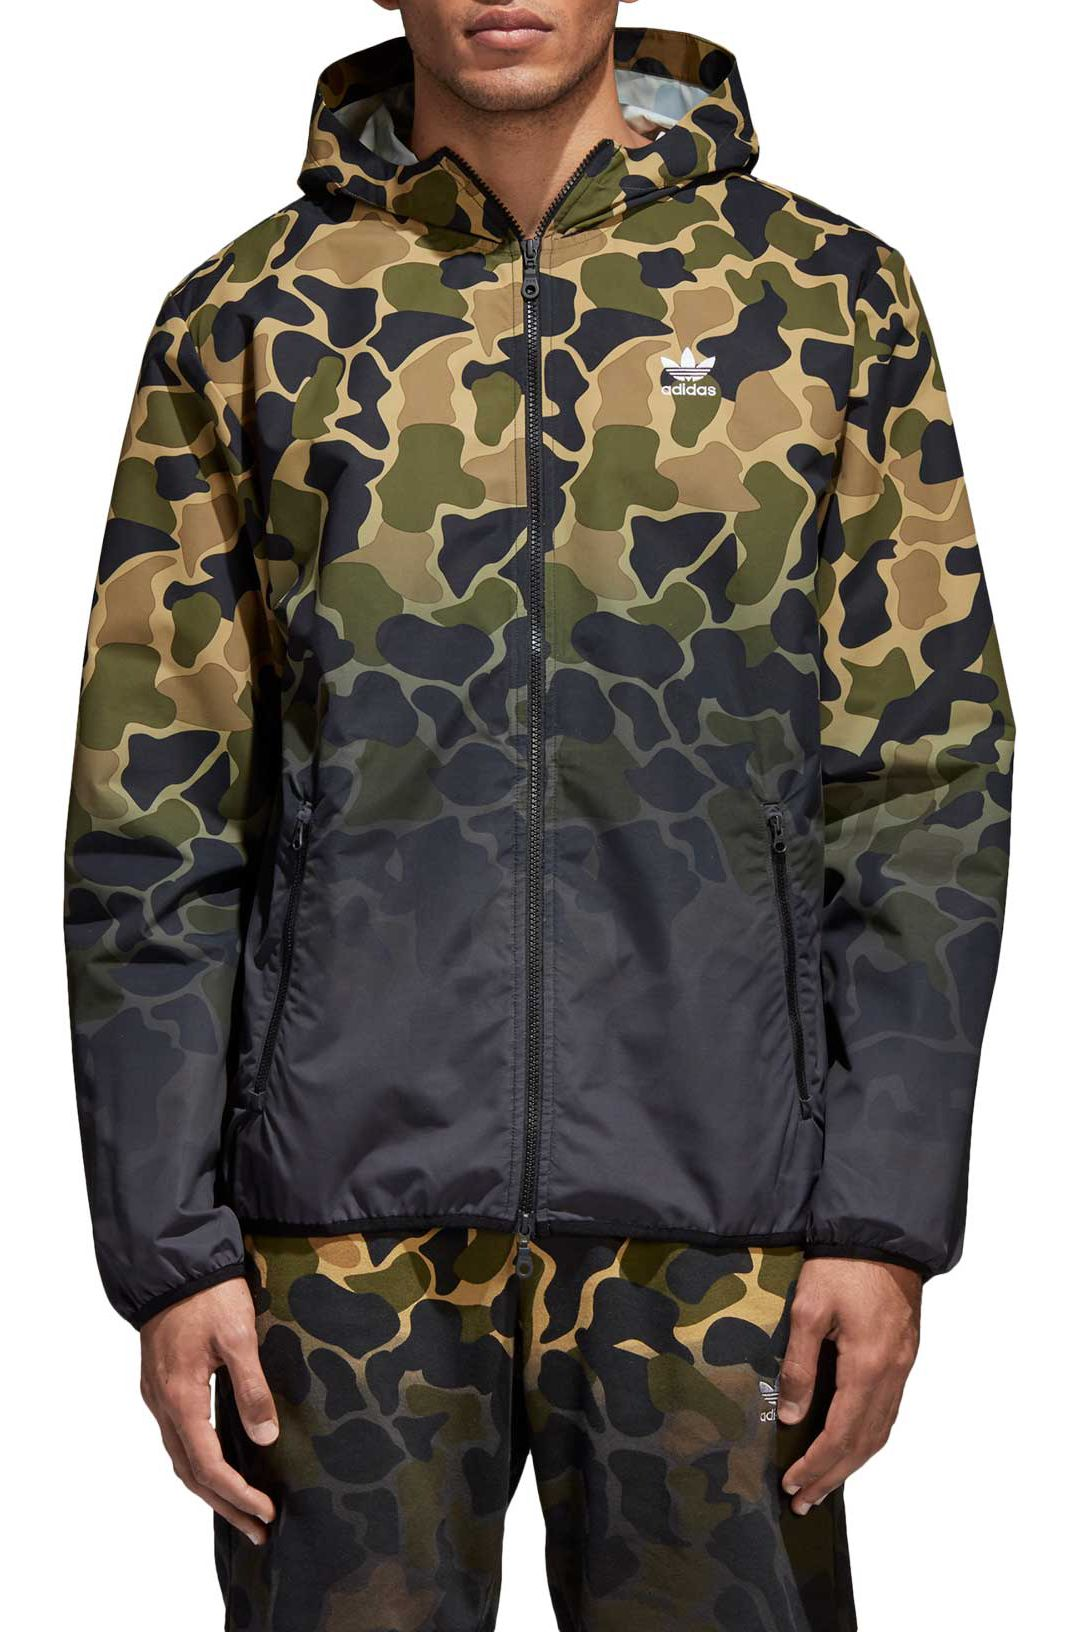 9d7708e8f55a8c adidas Originals Men's Camo Windbreaker Jacket. noImageFound. Previous